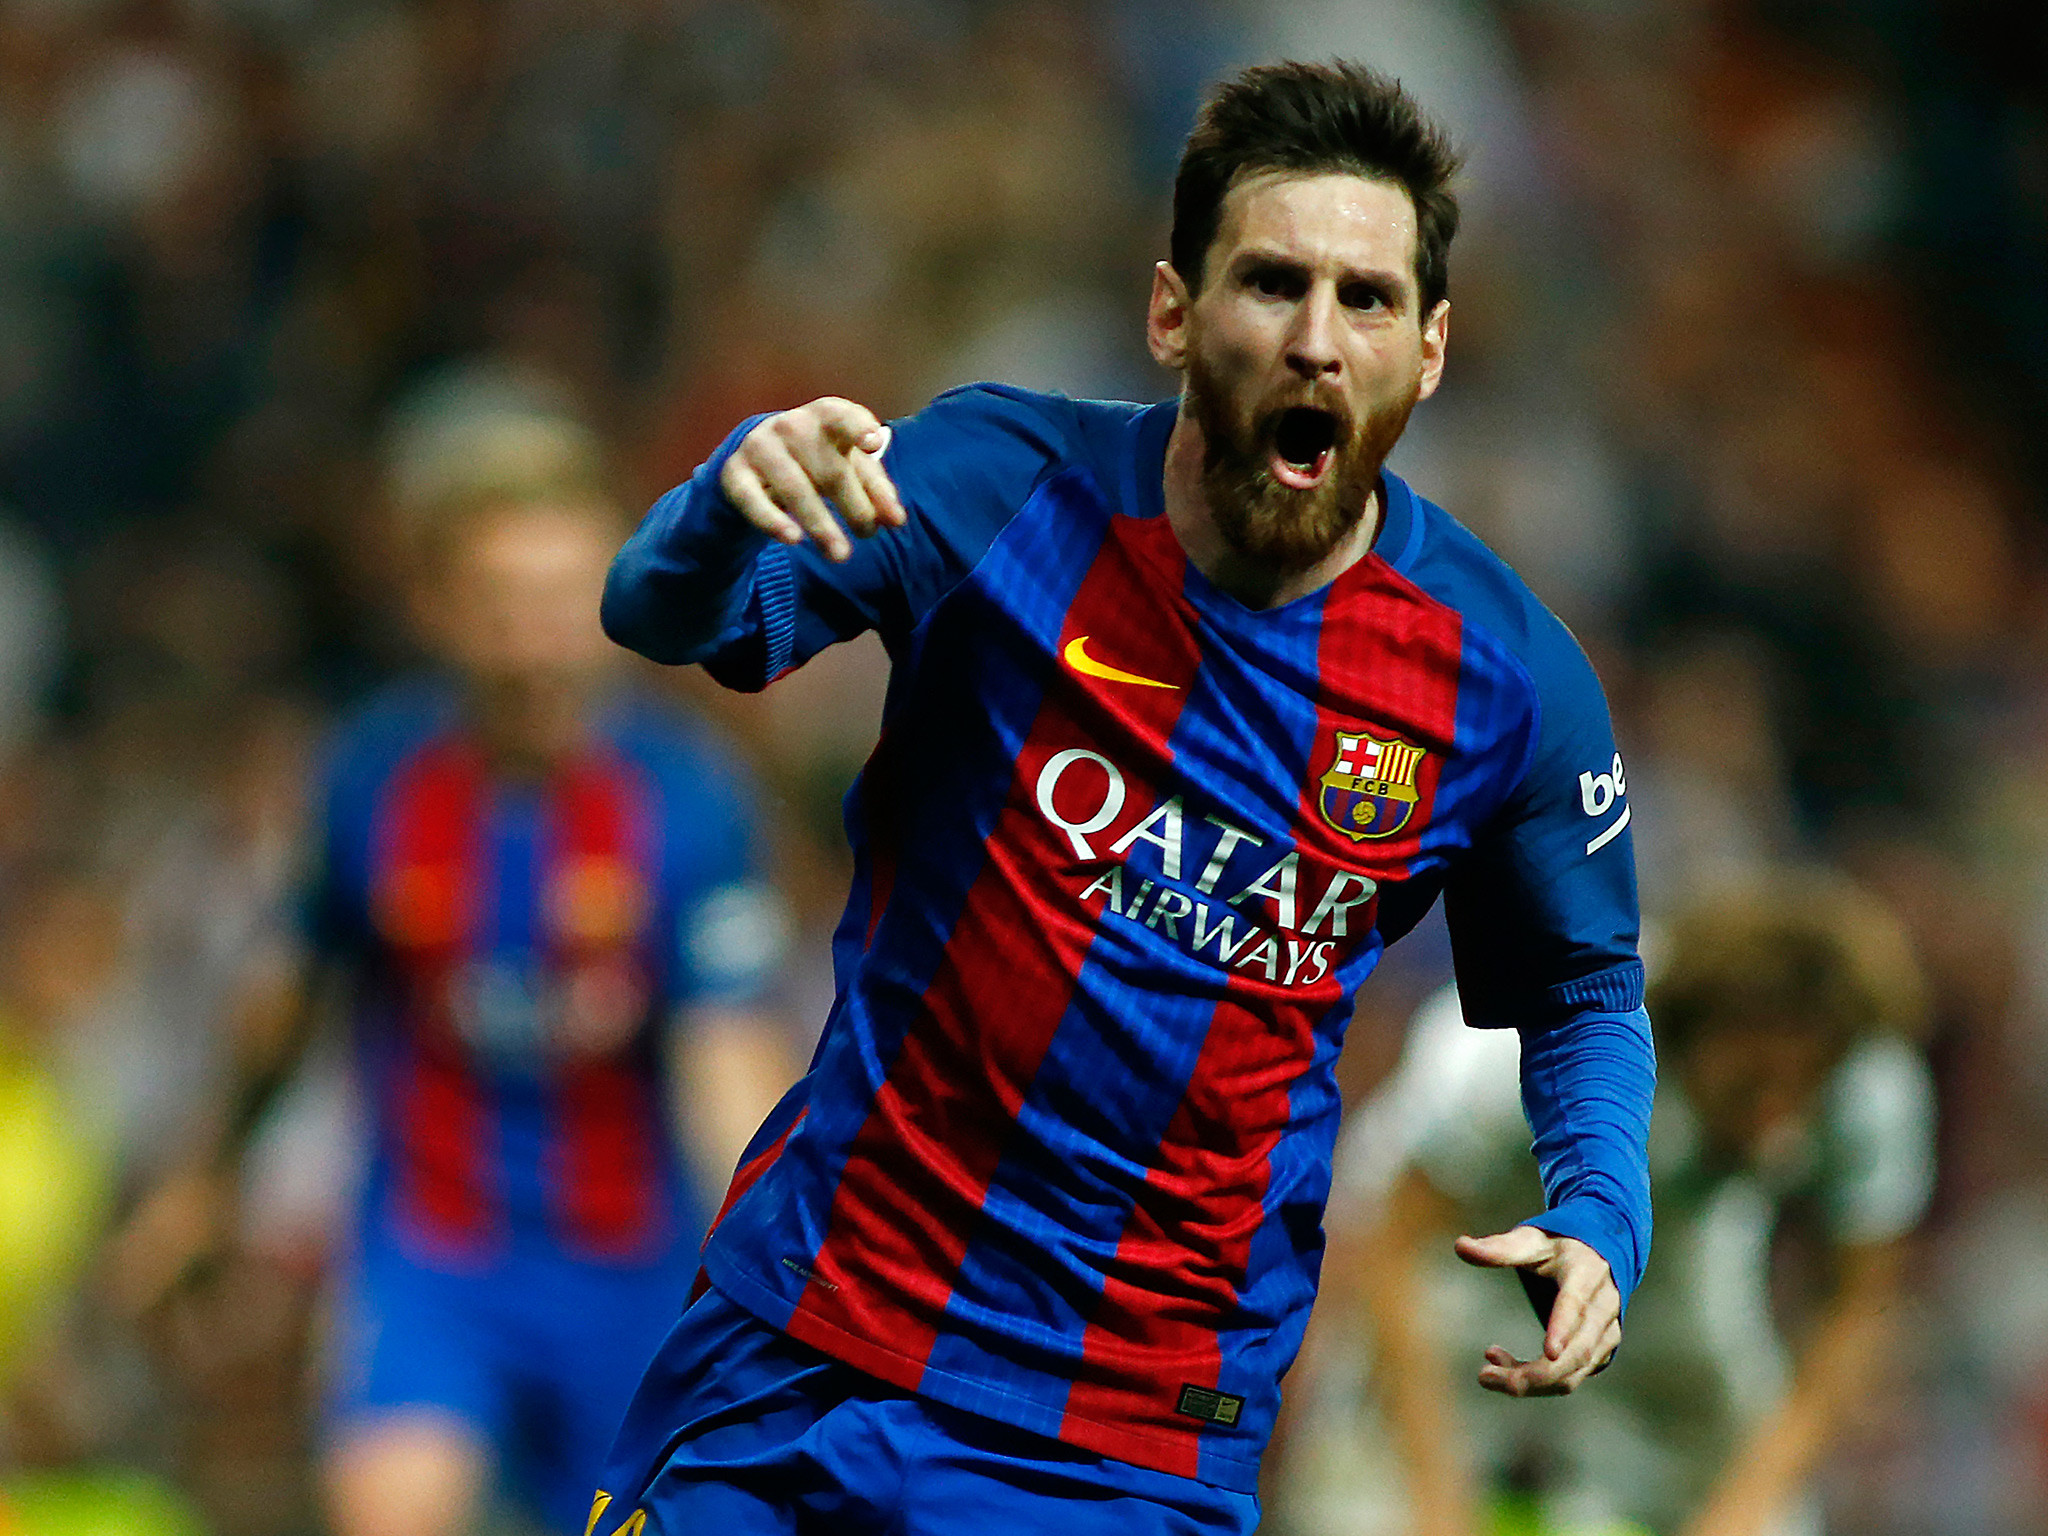 C Ronaldo Vs Messi Wallpapers 2018 77 Background Pictures